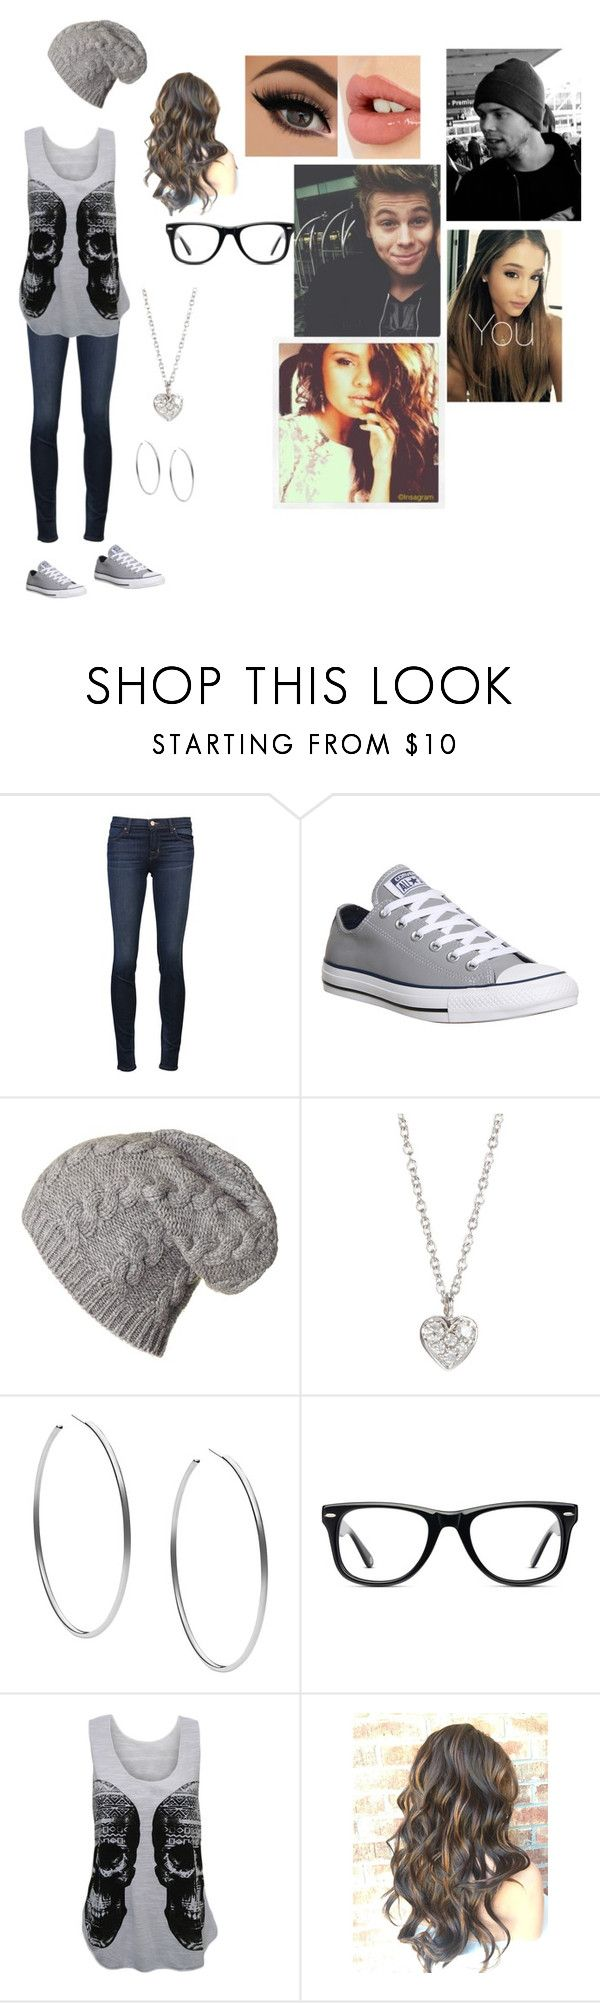 """""""You and your boyfriend Luke and your best friends Selena and Ashton going out for a walk"""" by becca-arceo ❤ liked on Polyvore featuring J Brand, Converse, Finn, Michael Kors, Muse, WearAll, Charlotte Tilbury and Justin Bieber"""